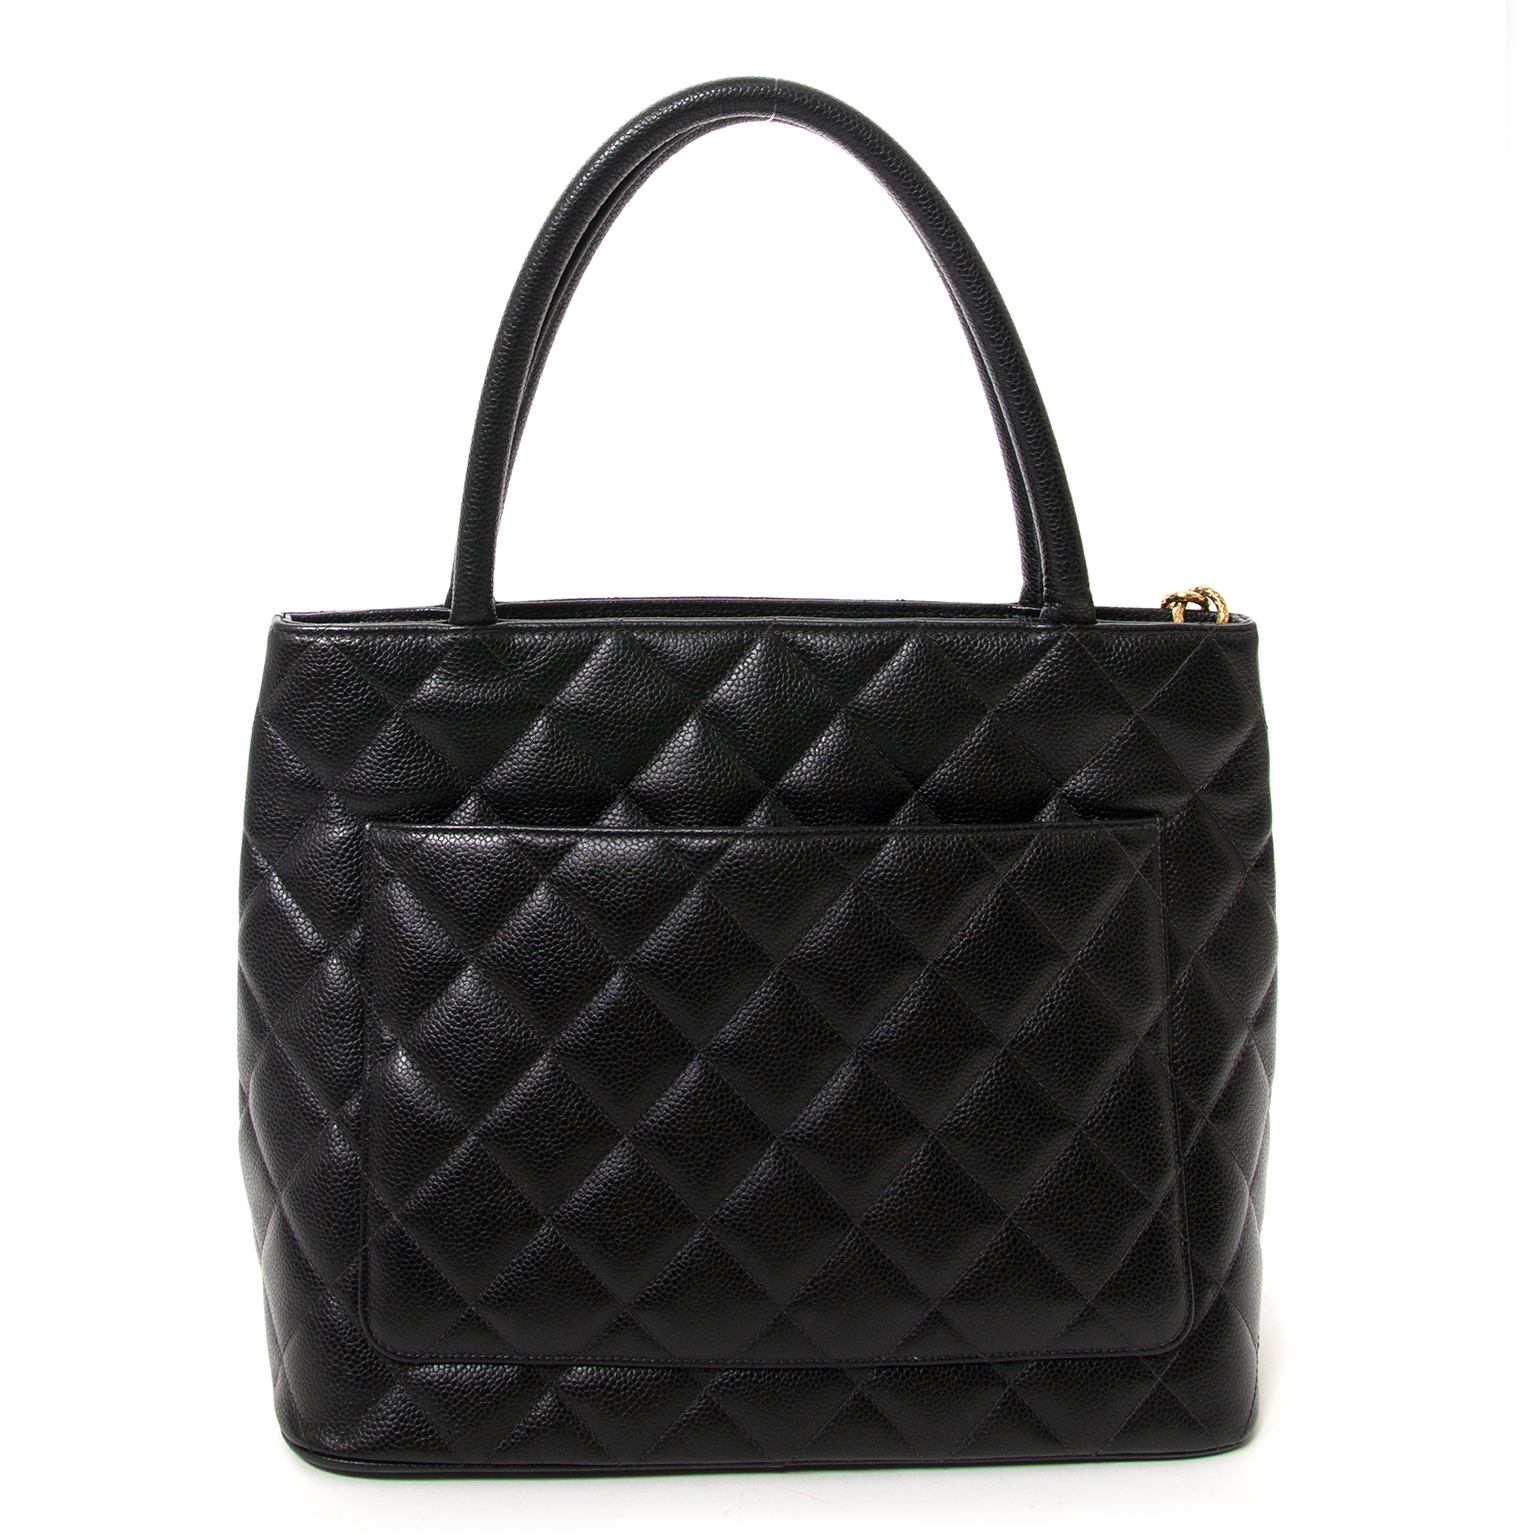 chanel grand cc classic black shopper now for sale at labellov vintage webshop belgium